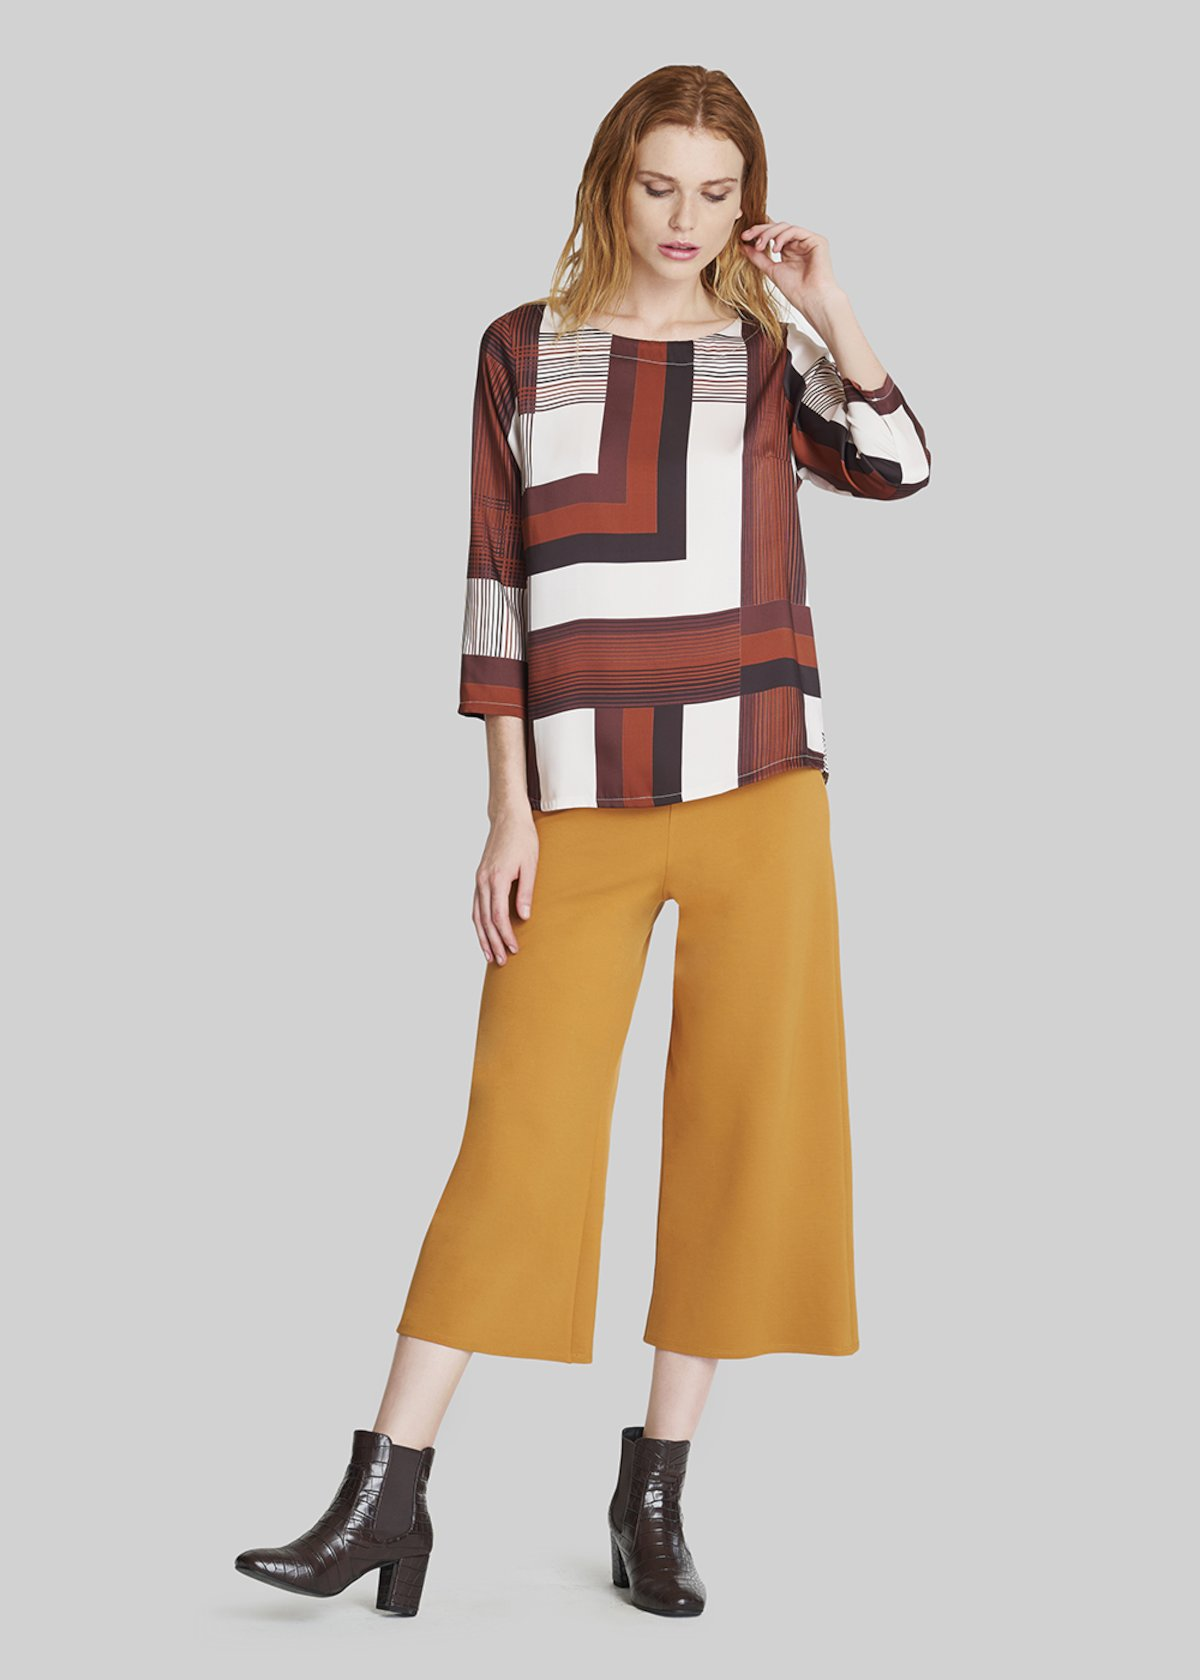 Pixel palazzo trousers - Curry